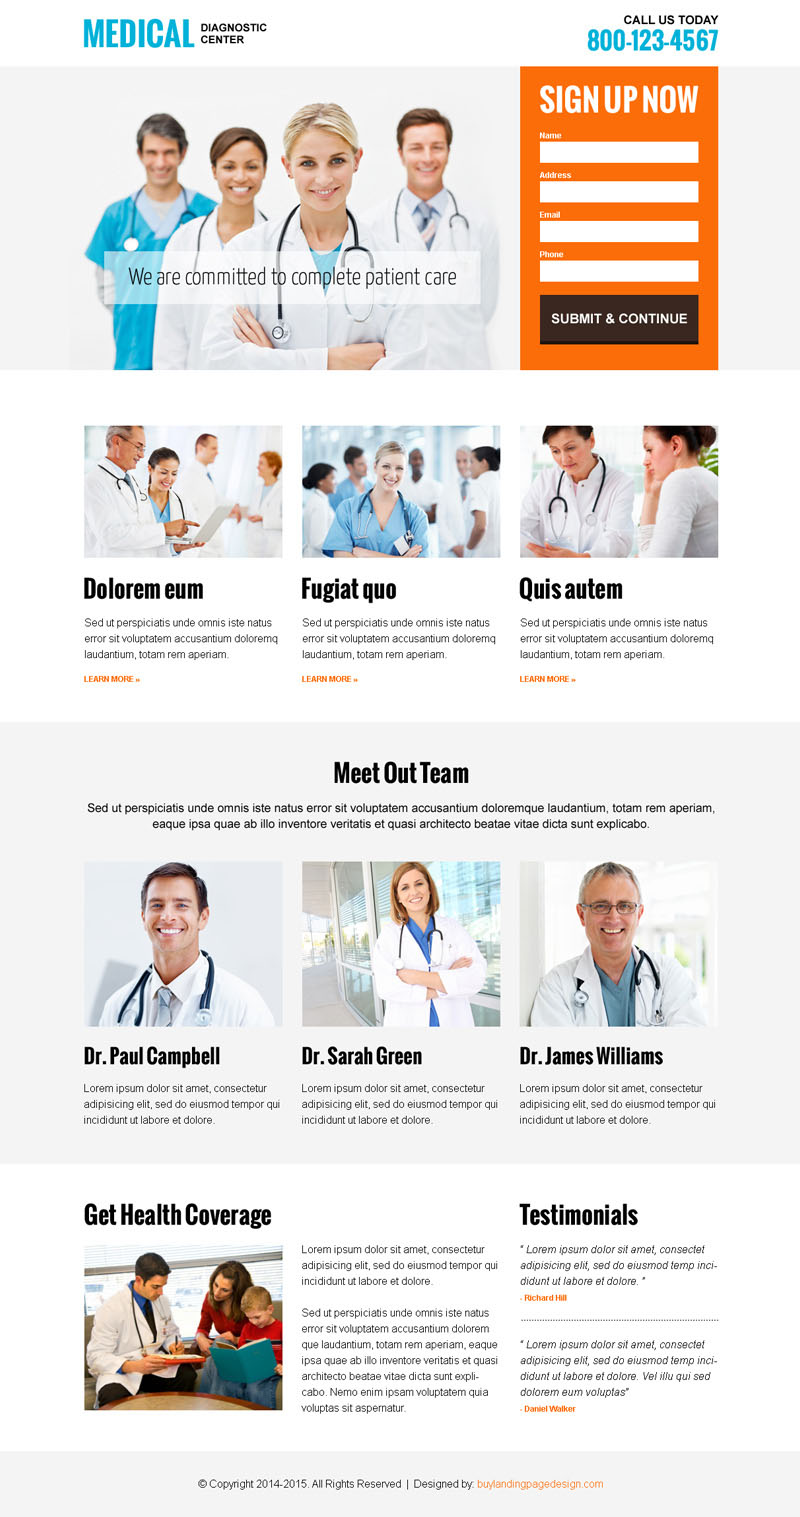 best-medical-diagnostic-center-responsive-lead-capture-landing-page-design-templates-to-increase-your-medical-diagnostic-business-002